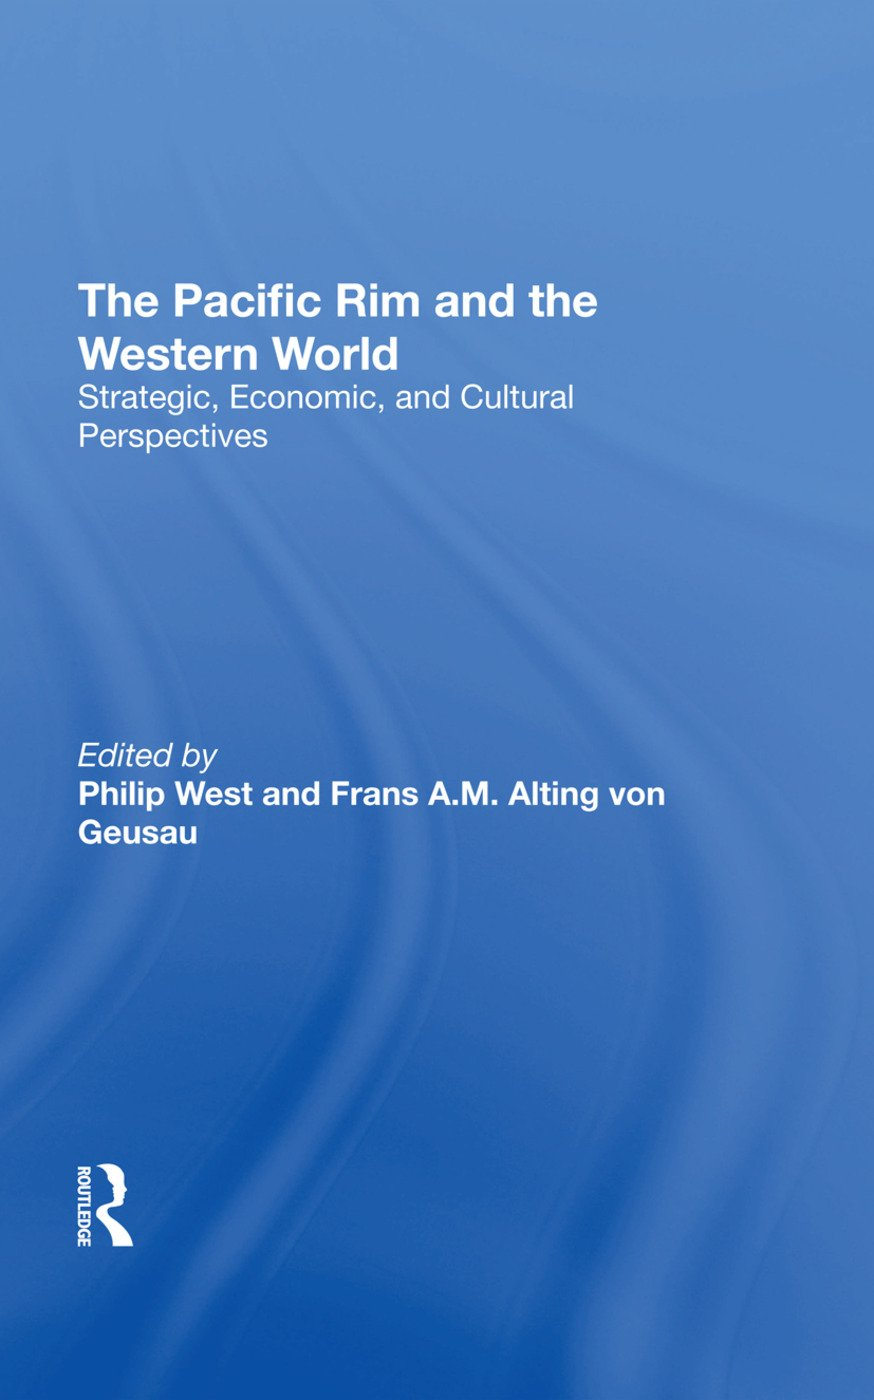 The Pacific Rim and the Western World